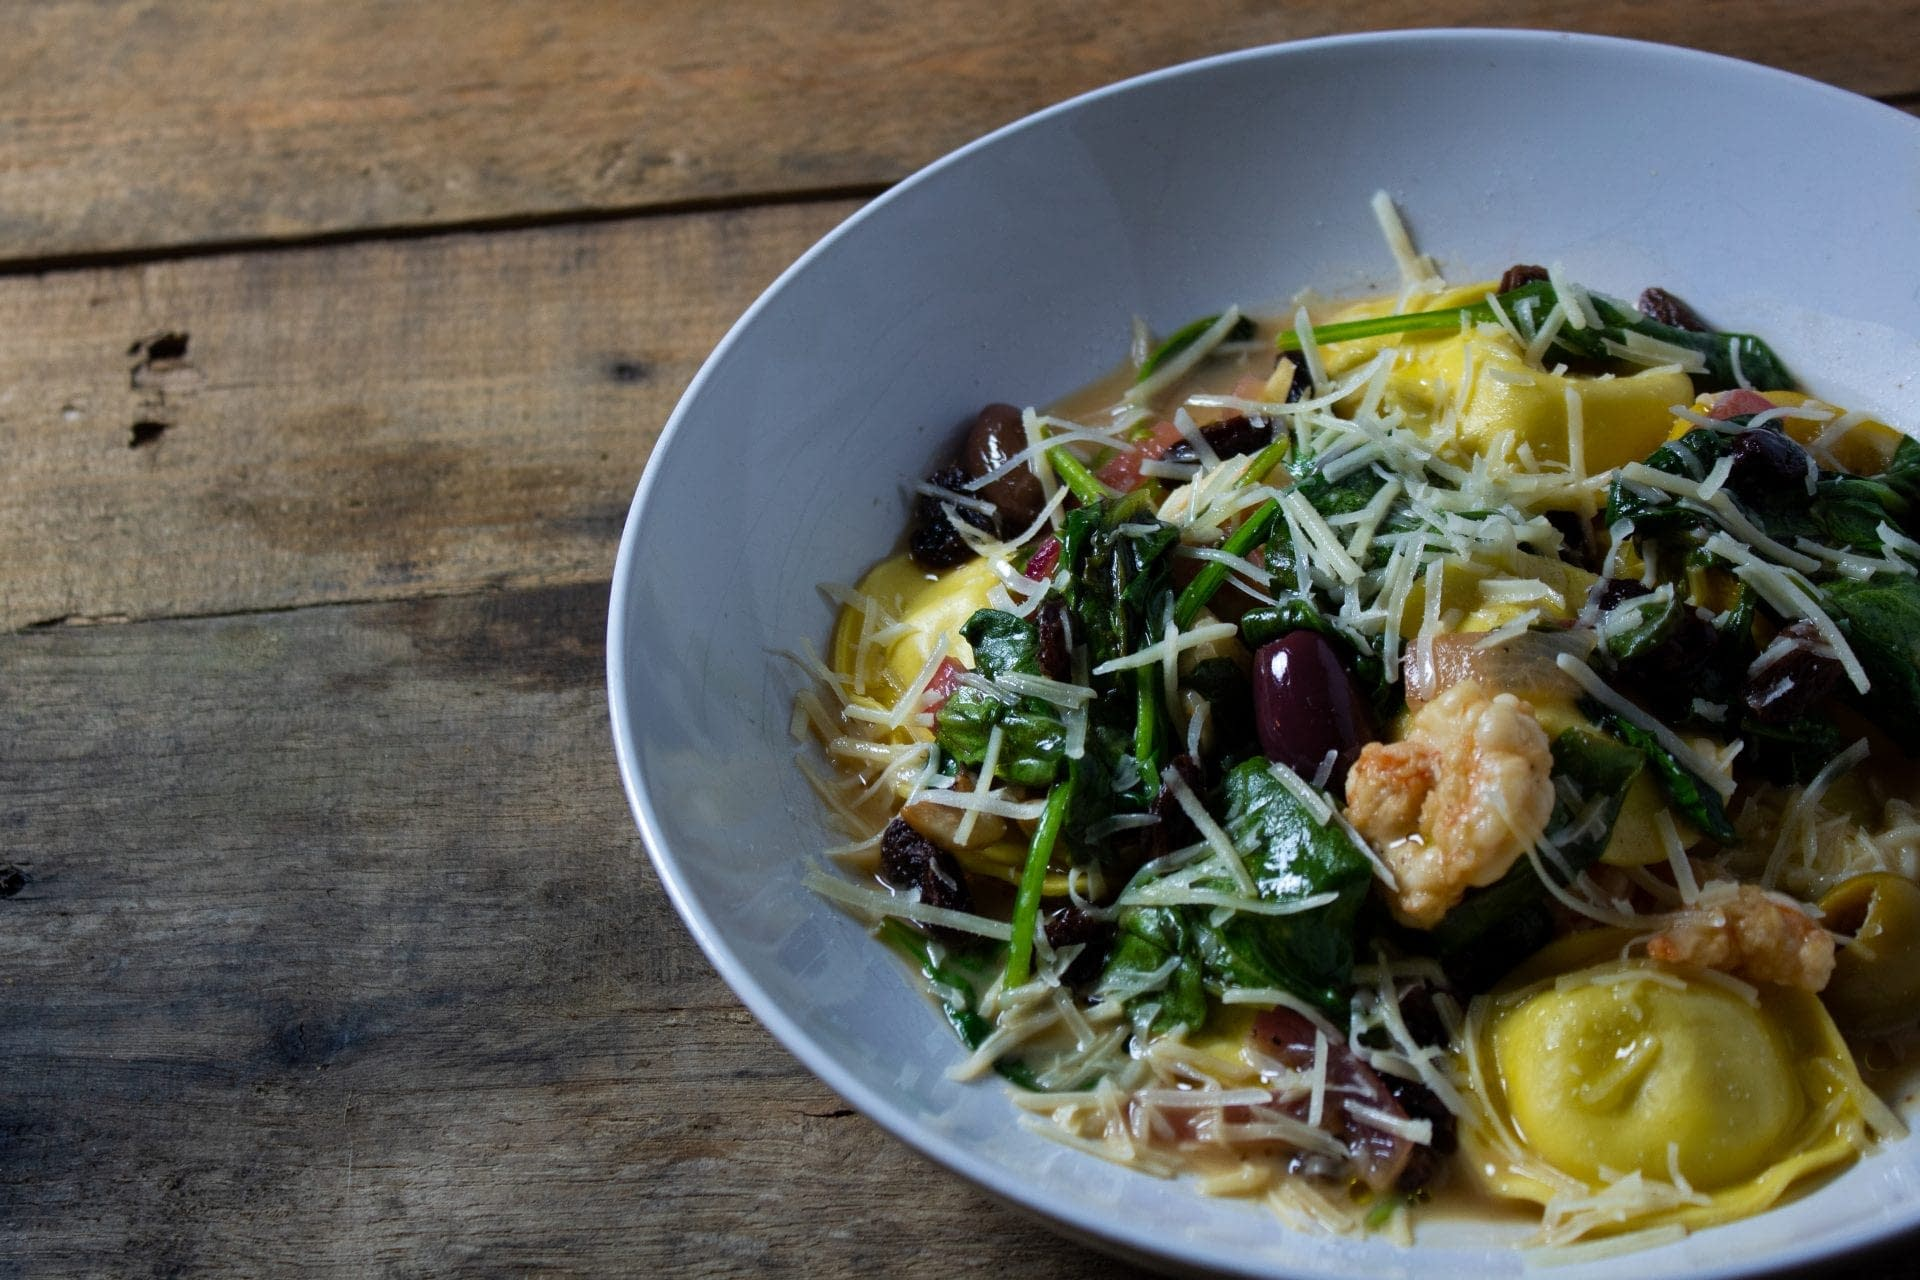 Ravioli with Gulf Shrimp, Spinach, Olives and Raisins